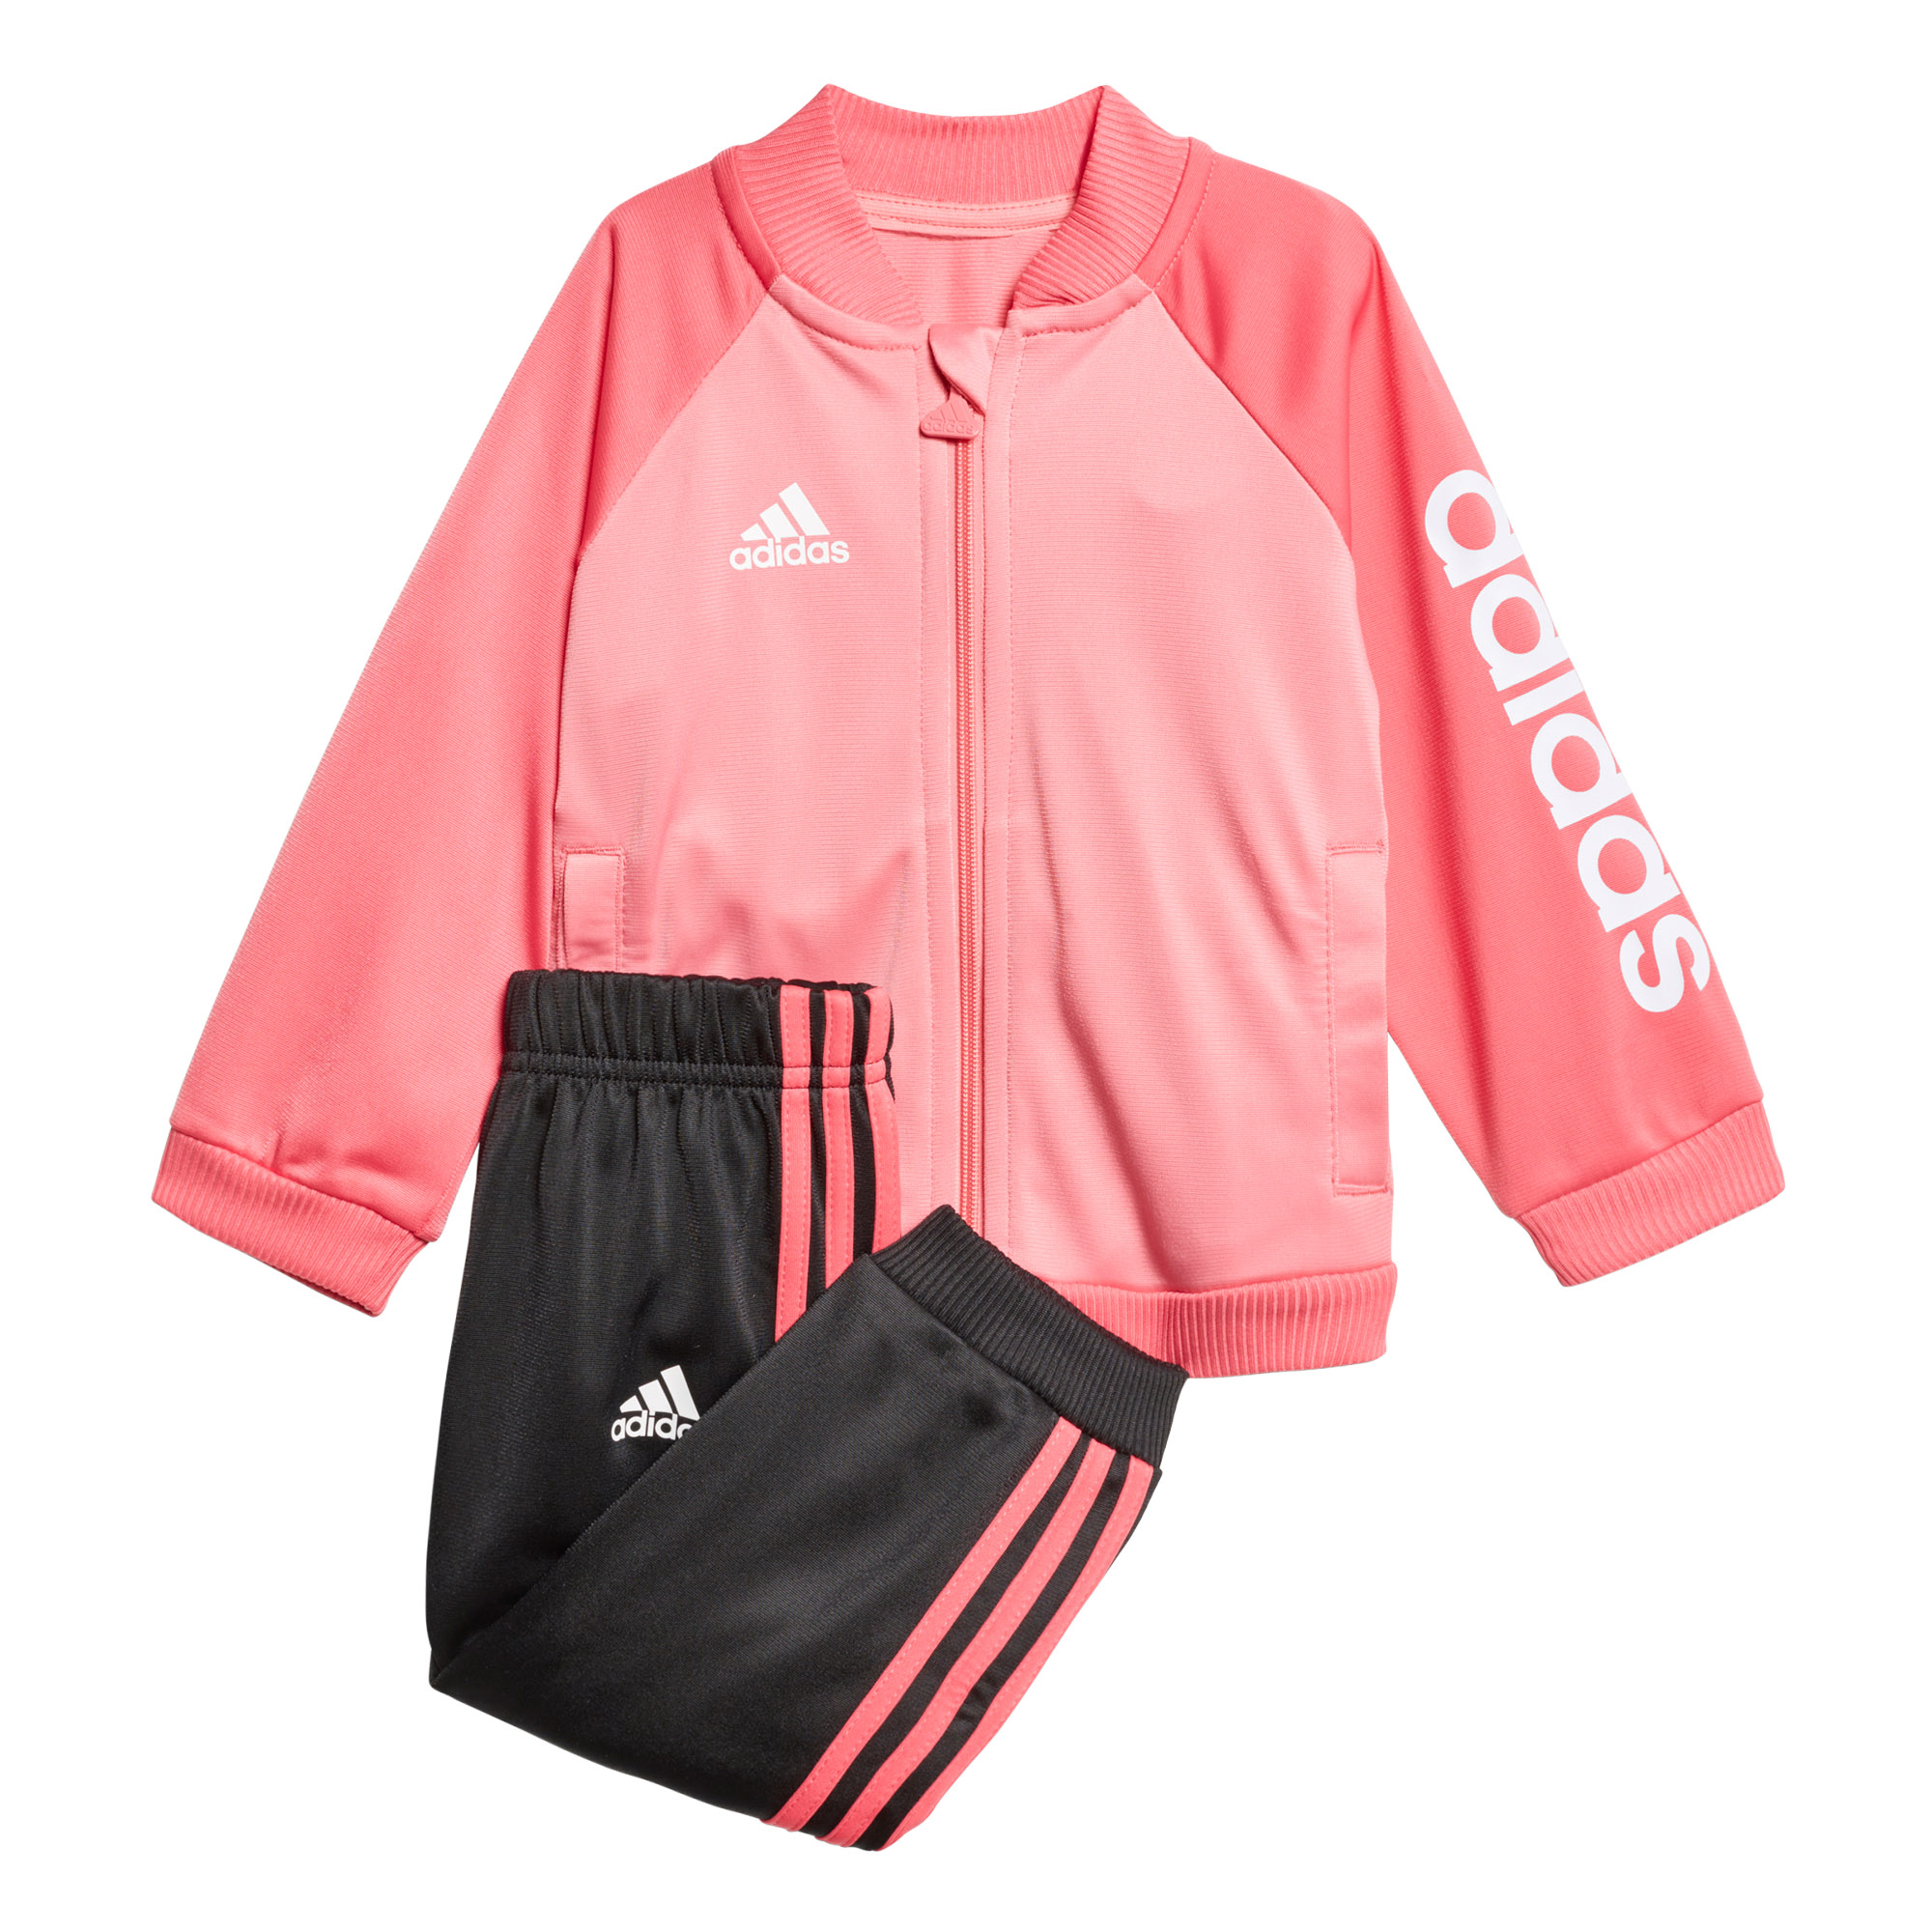 2fcb16c428a94 Details about adidas Shiny Sports Infant Toddler Baby Kids Girls Tracksuit  Set Pink